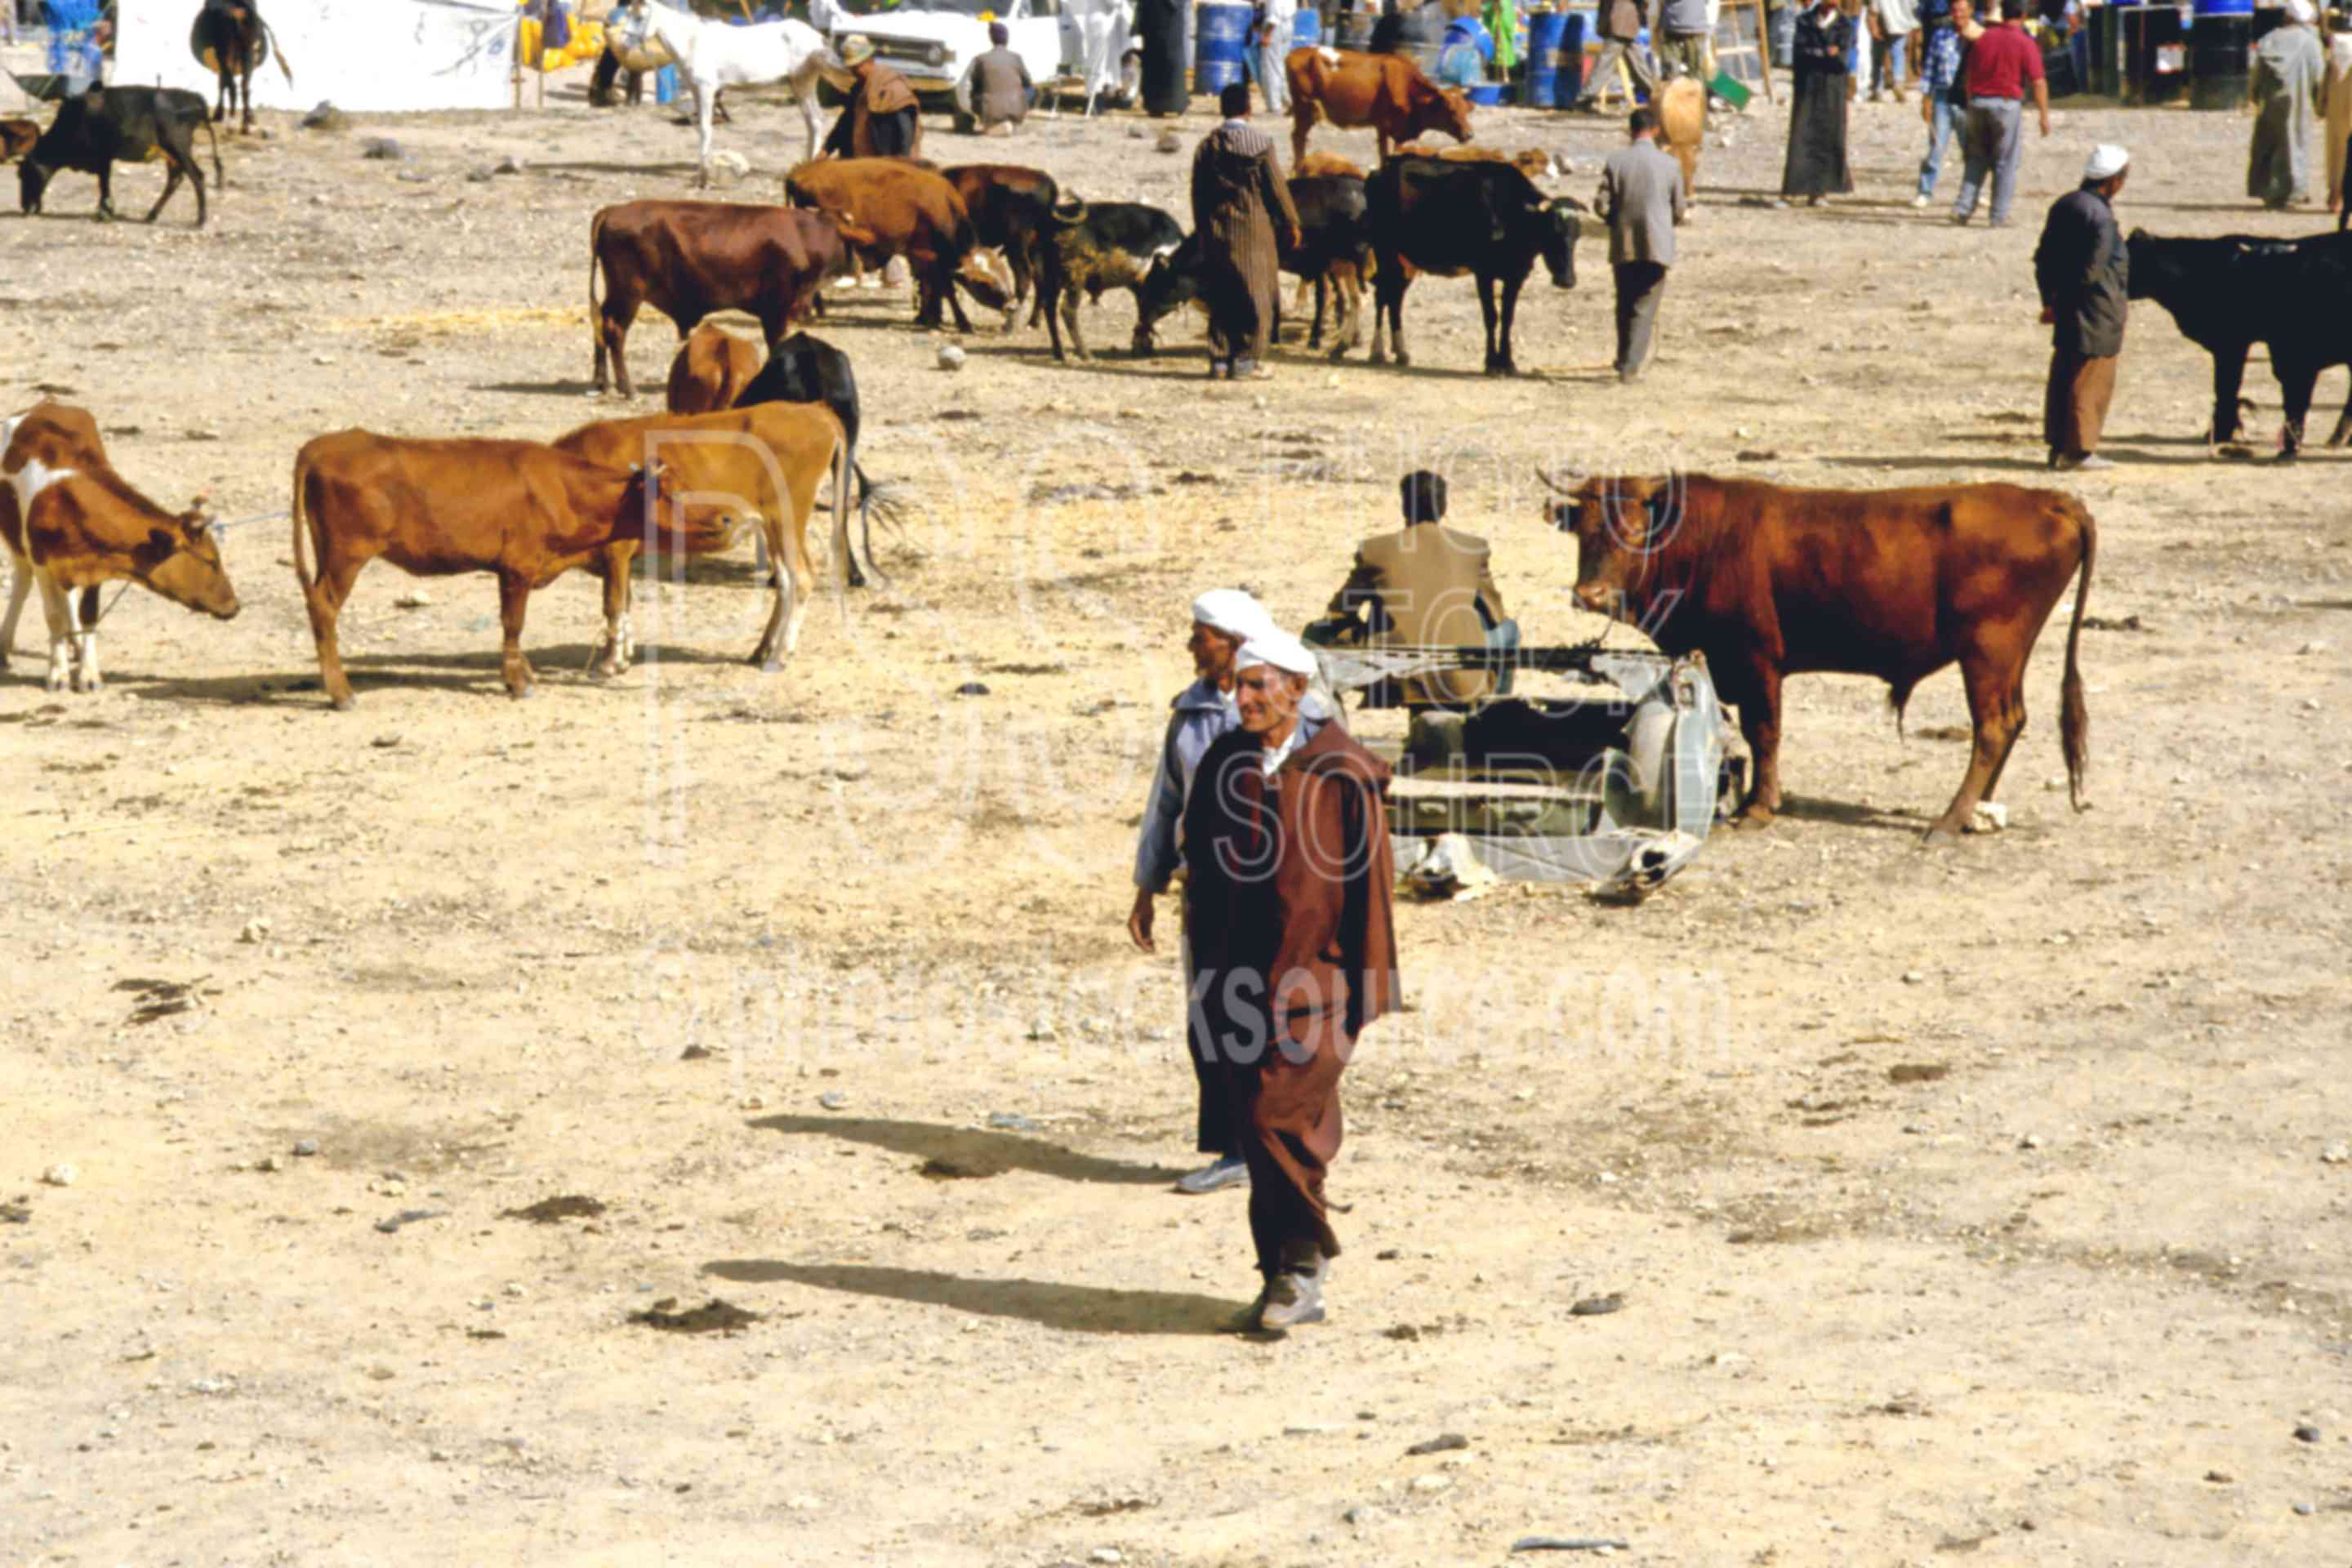 Berber Cattle Market,cattle,cows,market,mens,people,sell,morocco markets,animals